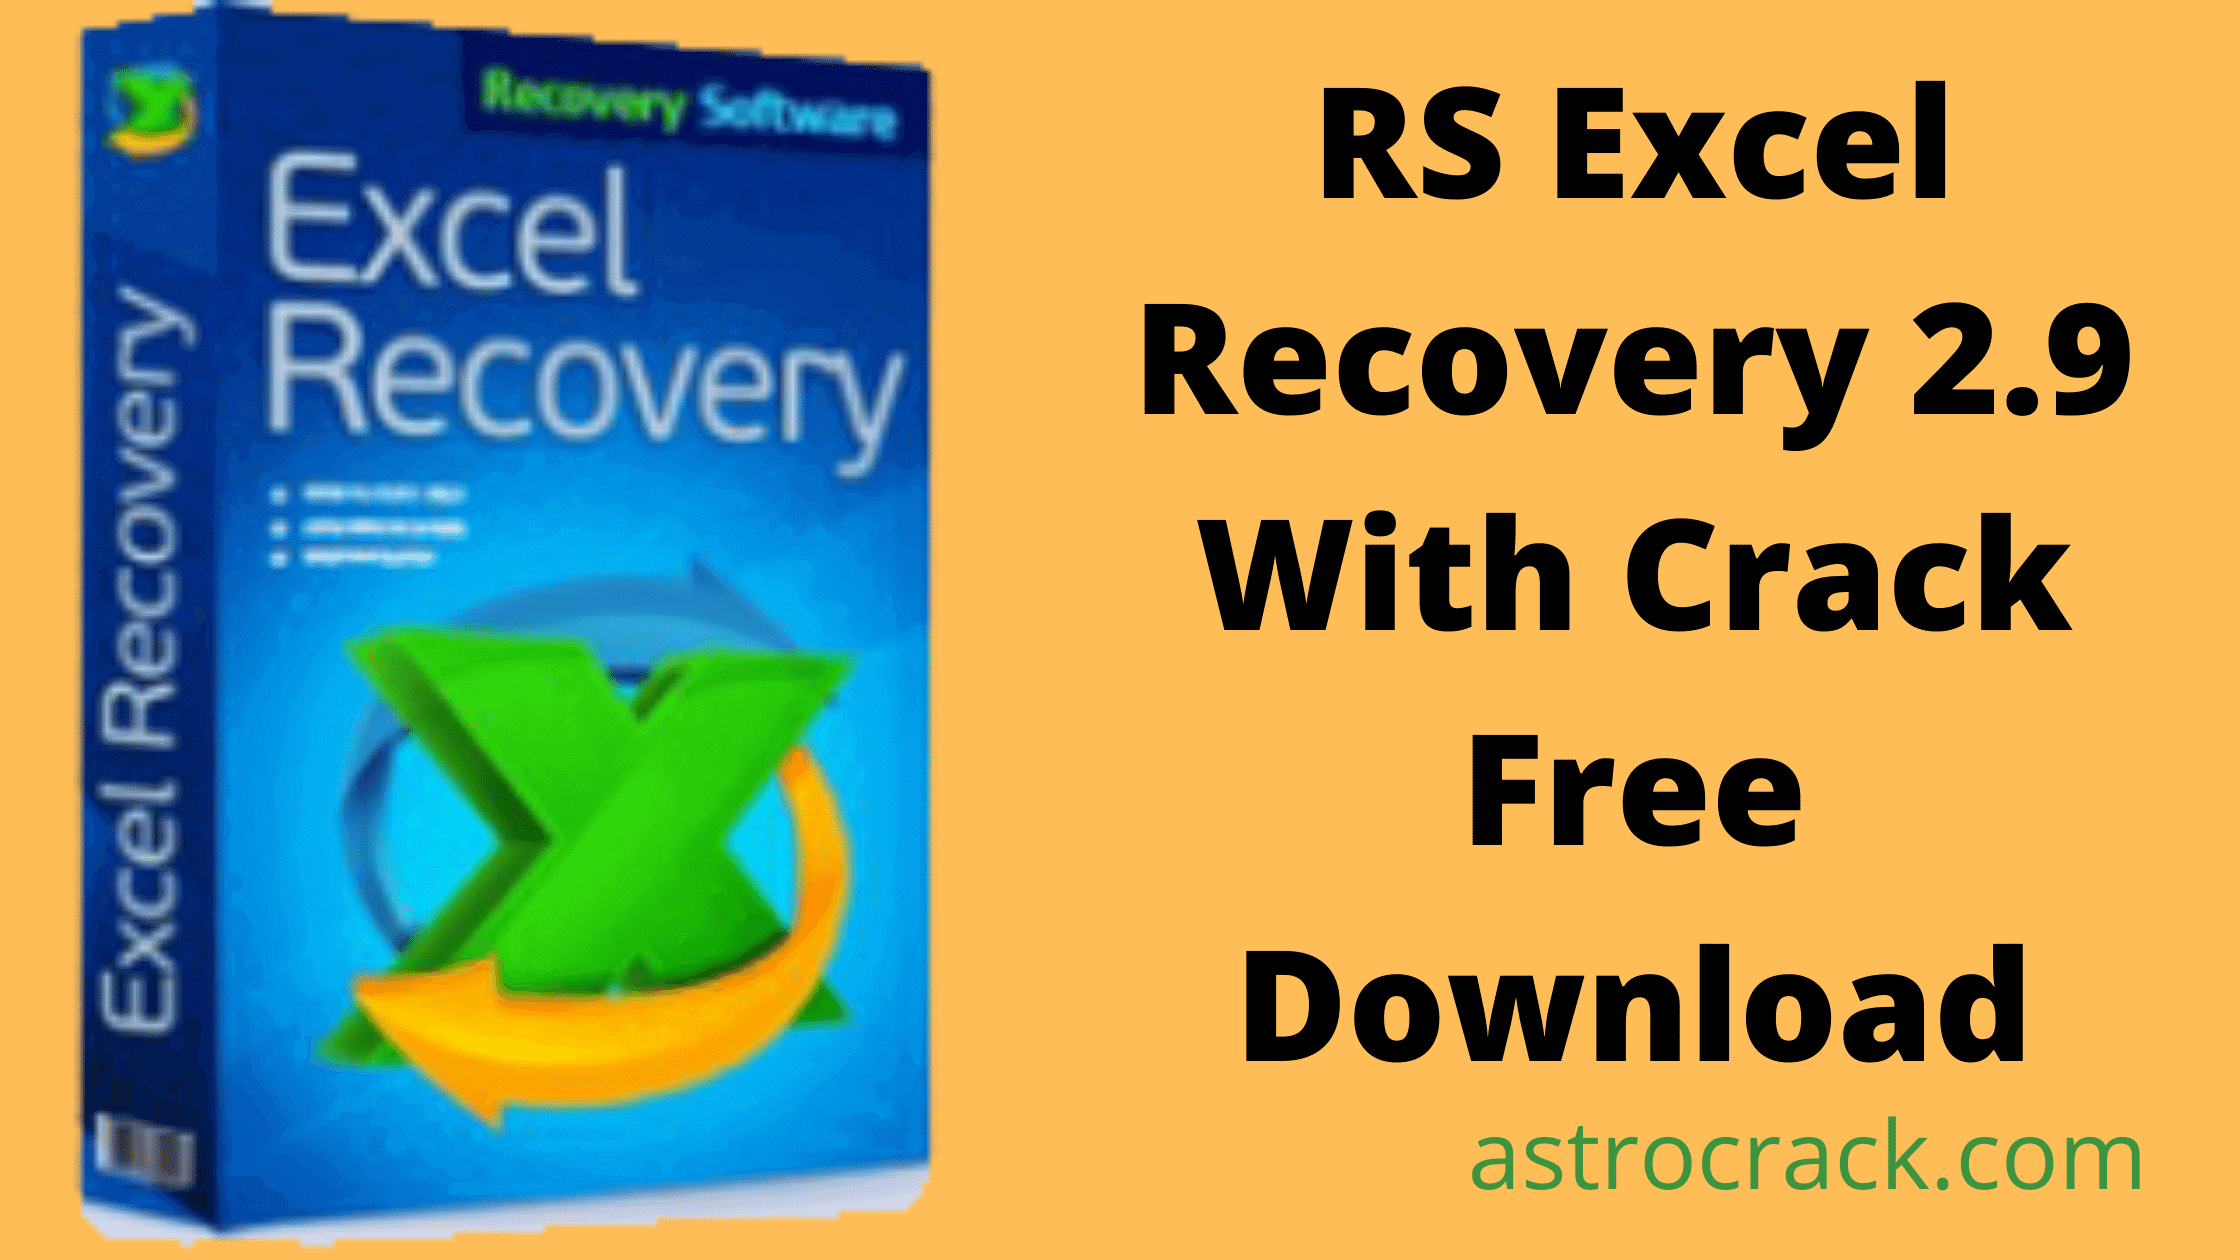 RS Excel Recovery, RS Excel Recovery crack, RS Excel Recovery crack download, RS Excel Recovery Crack patched, RS Excel Recovery download